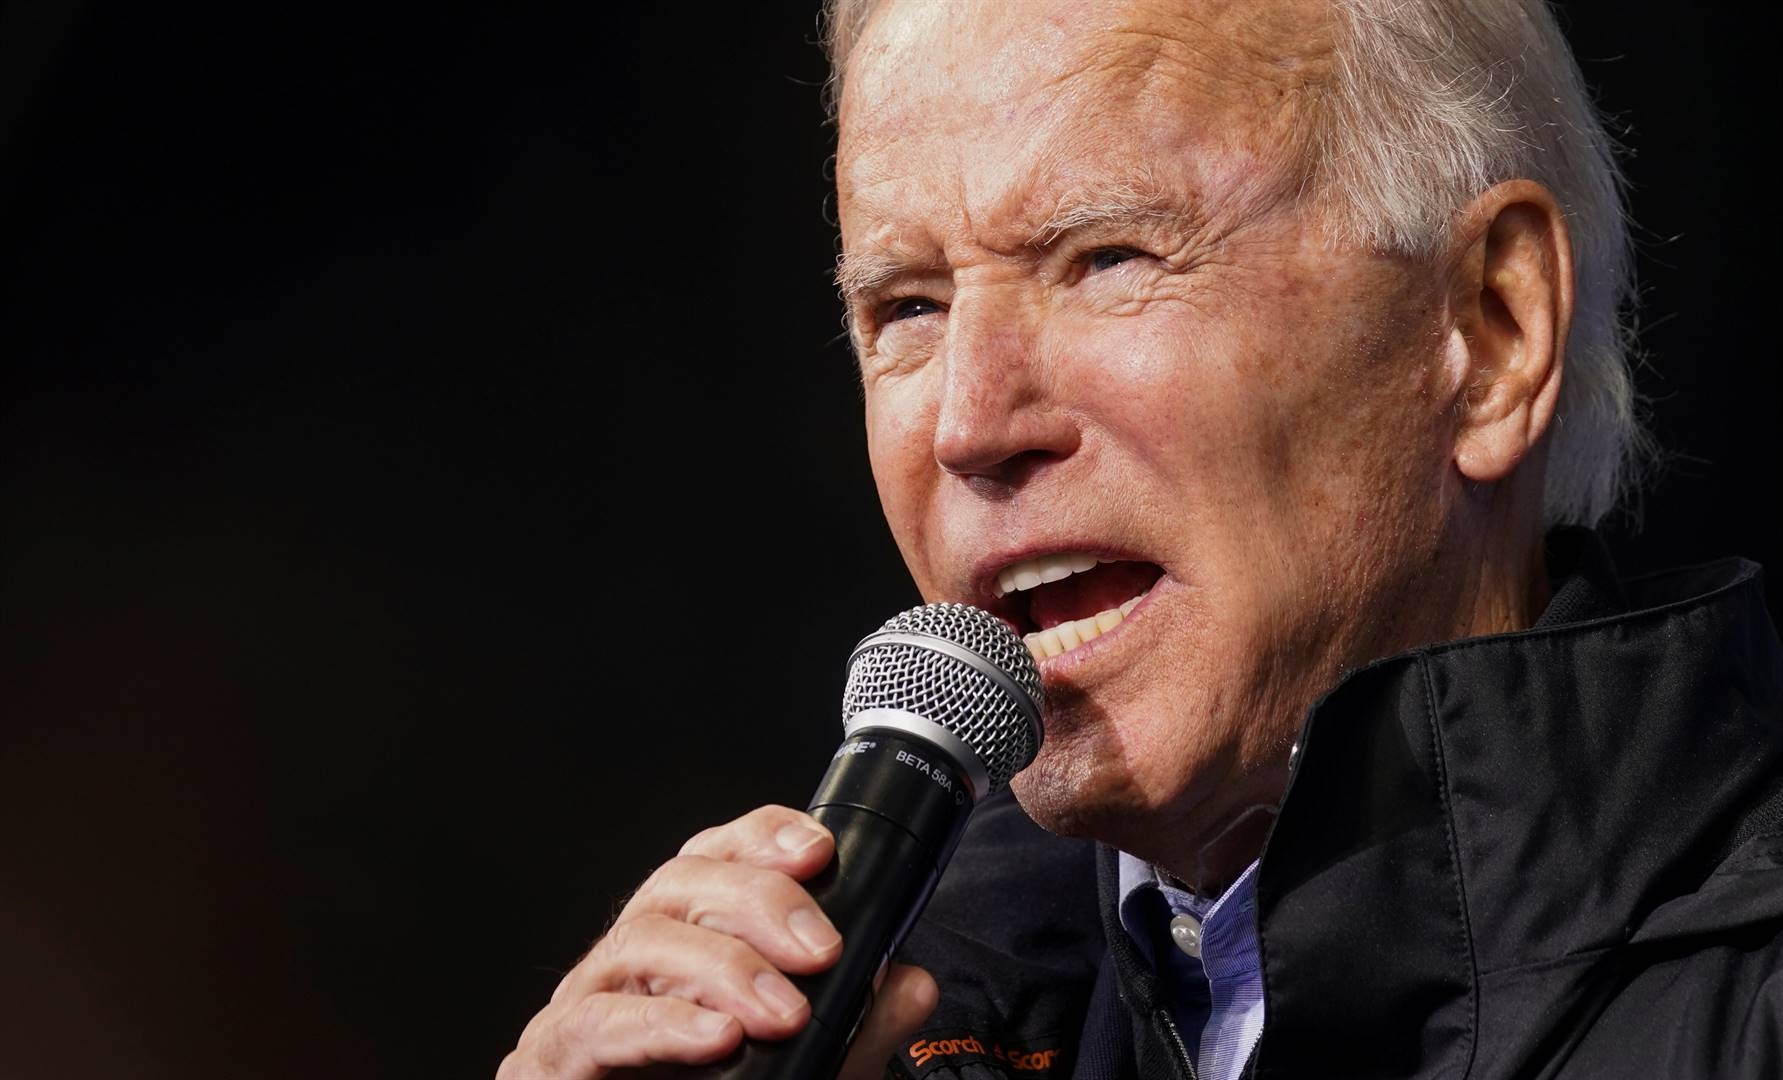 US Democratic presidential candidate Joe Biden speaks during a campaign event in Philadelphia on November 1 2020. Picture: Kevin Lamarque/Reuters